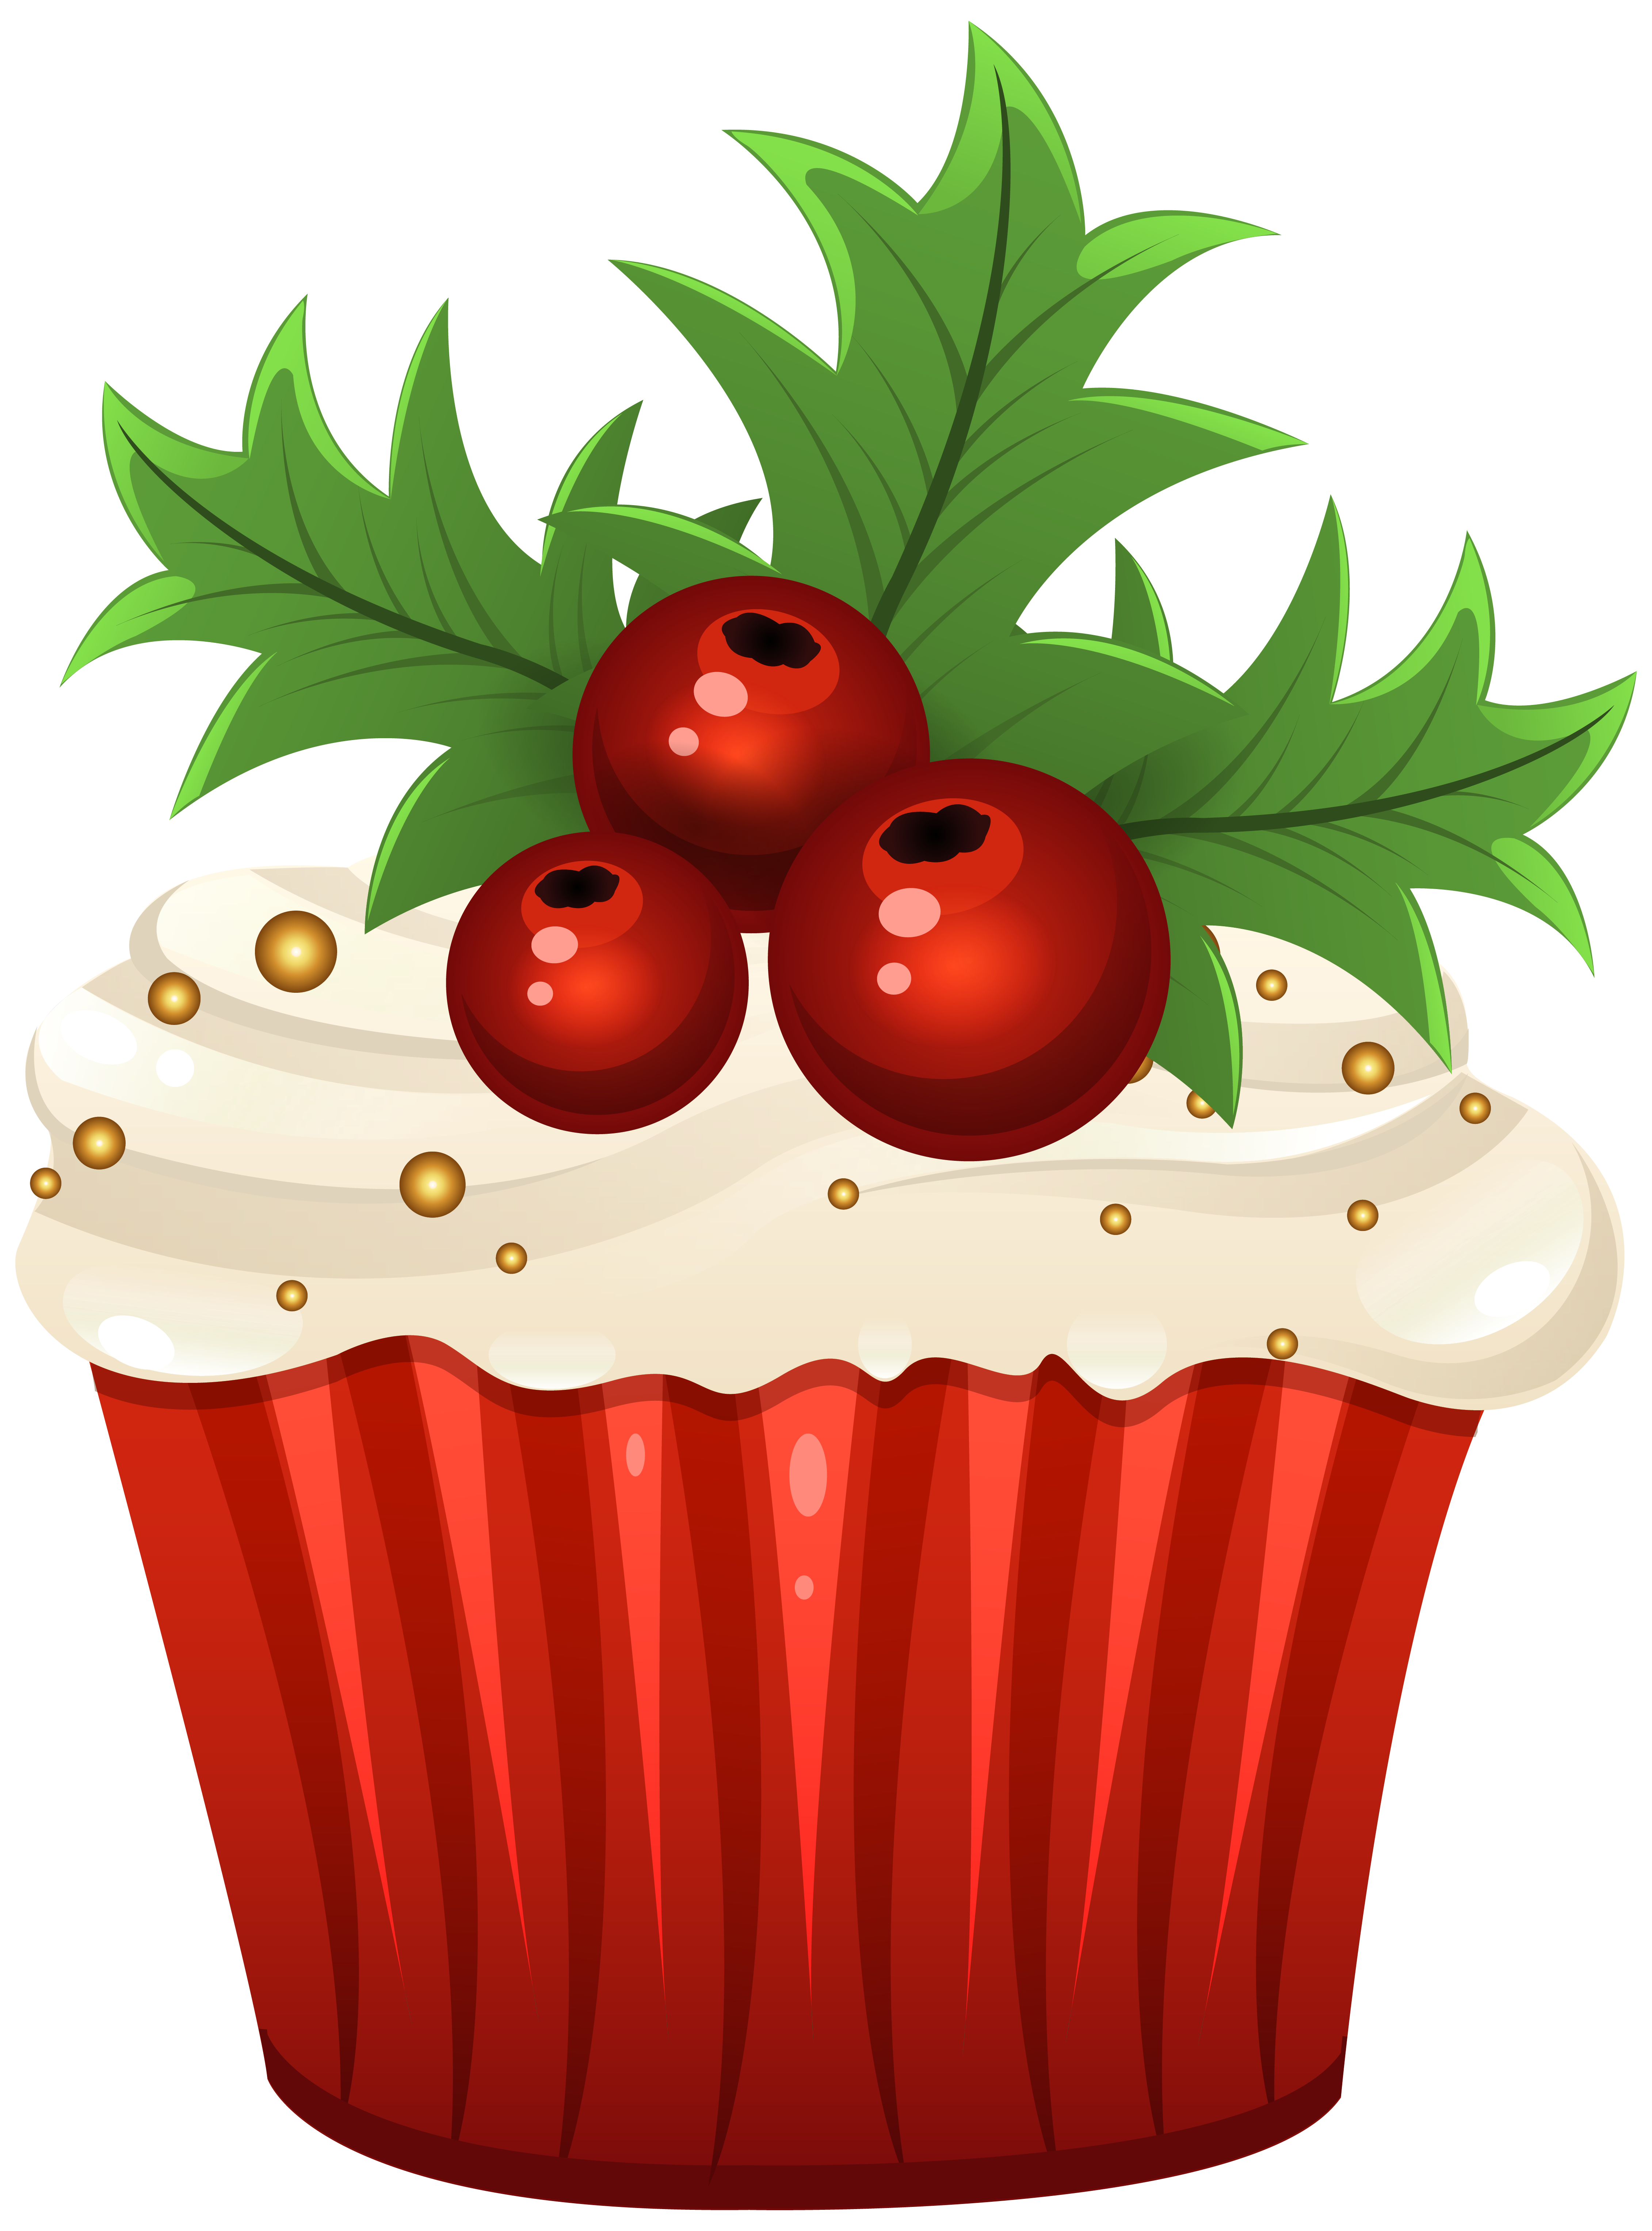 Muffins clipart big cupcake. Christmas muffin png clip